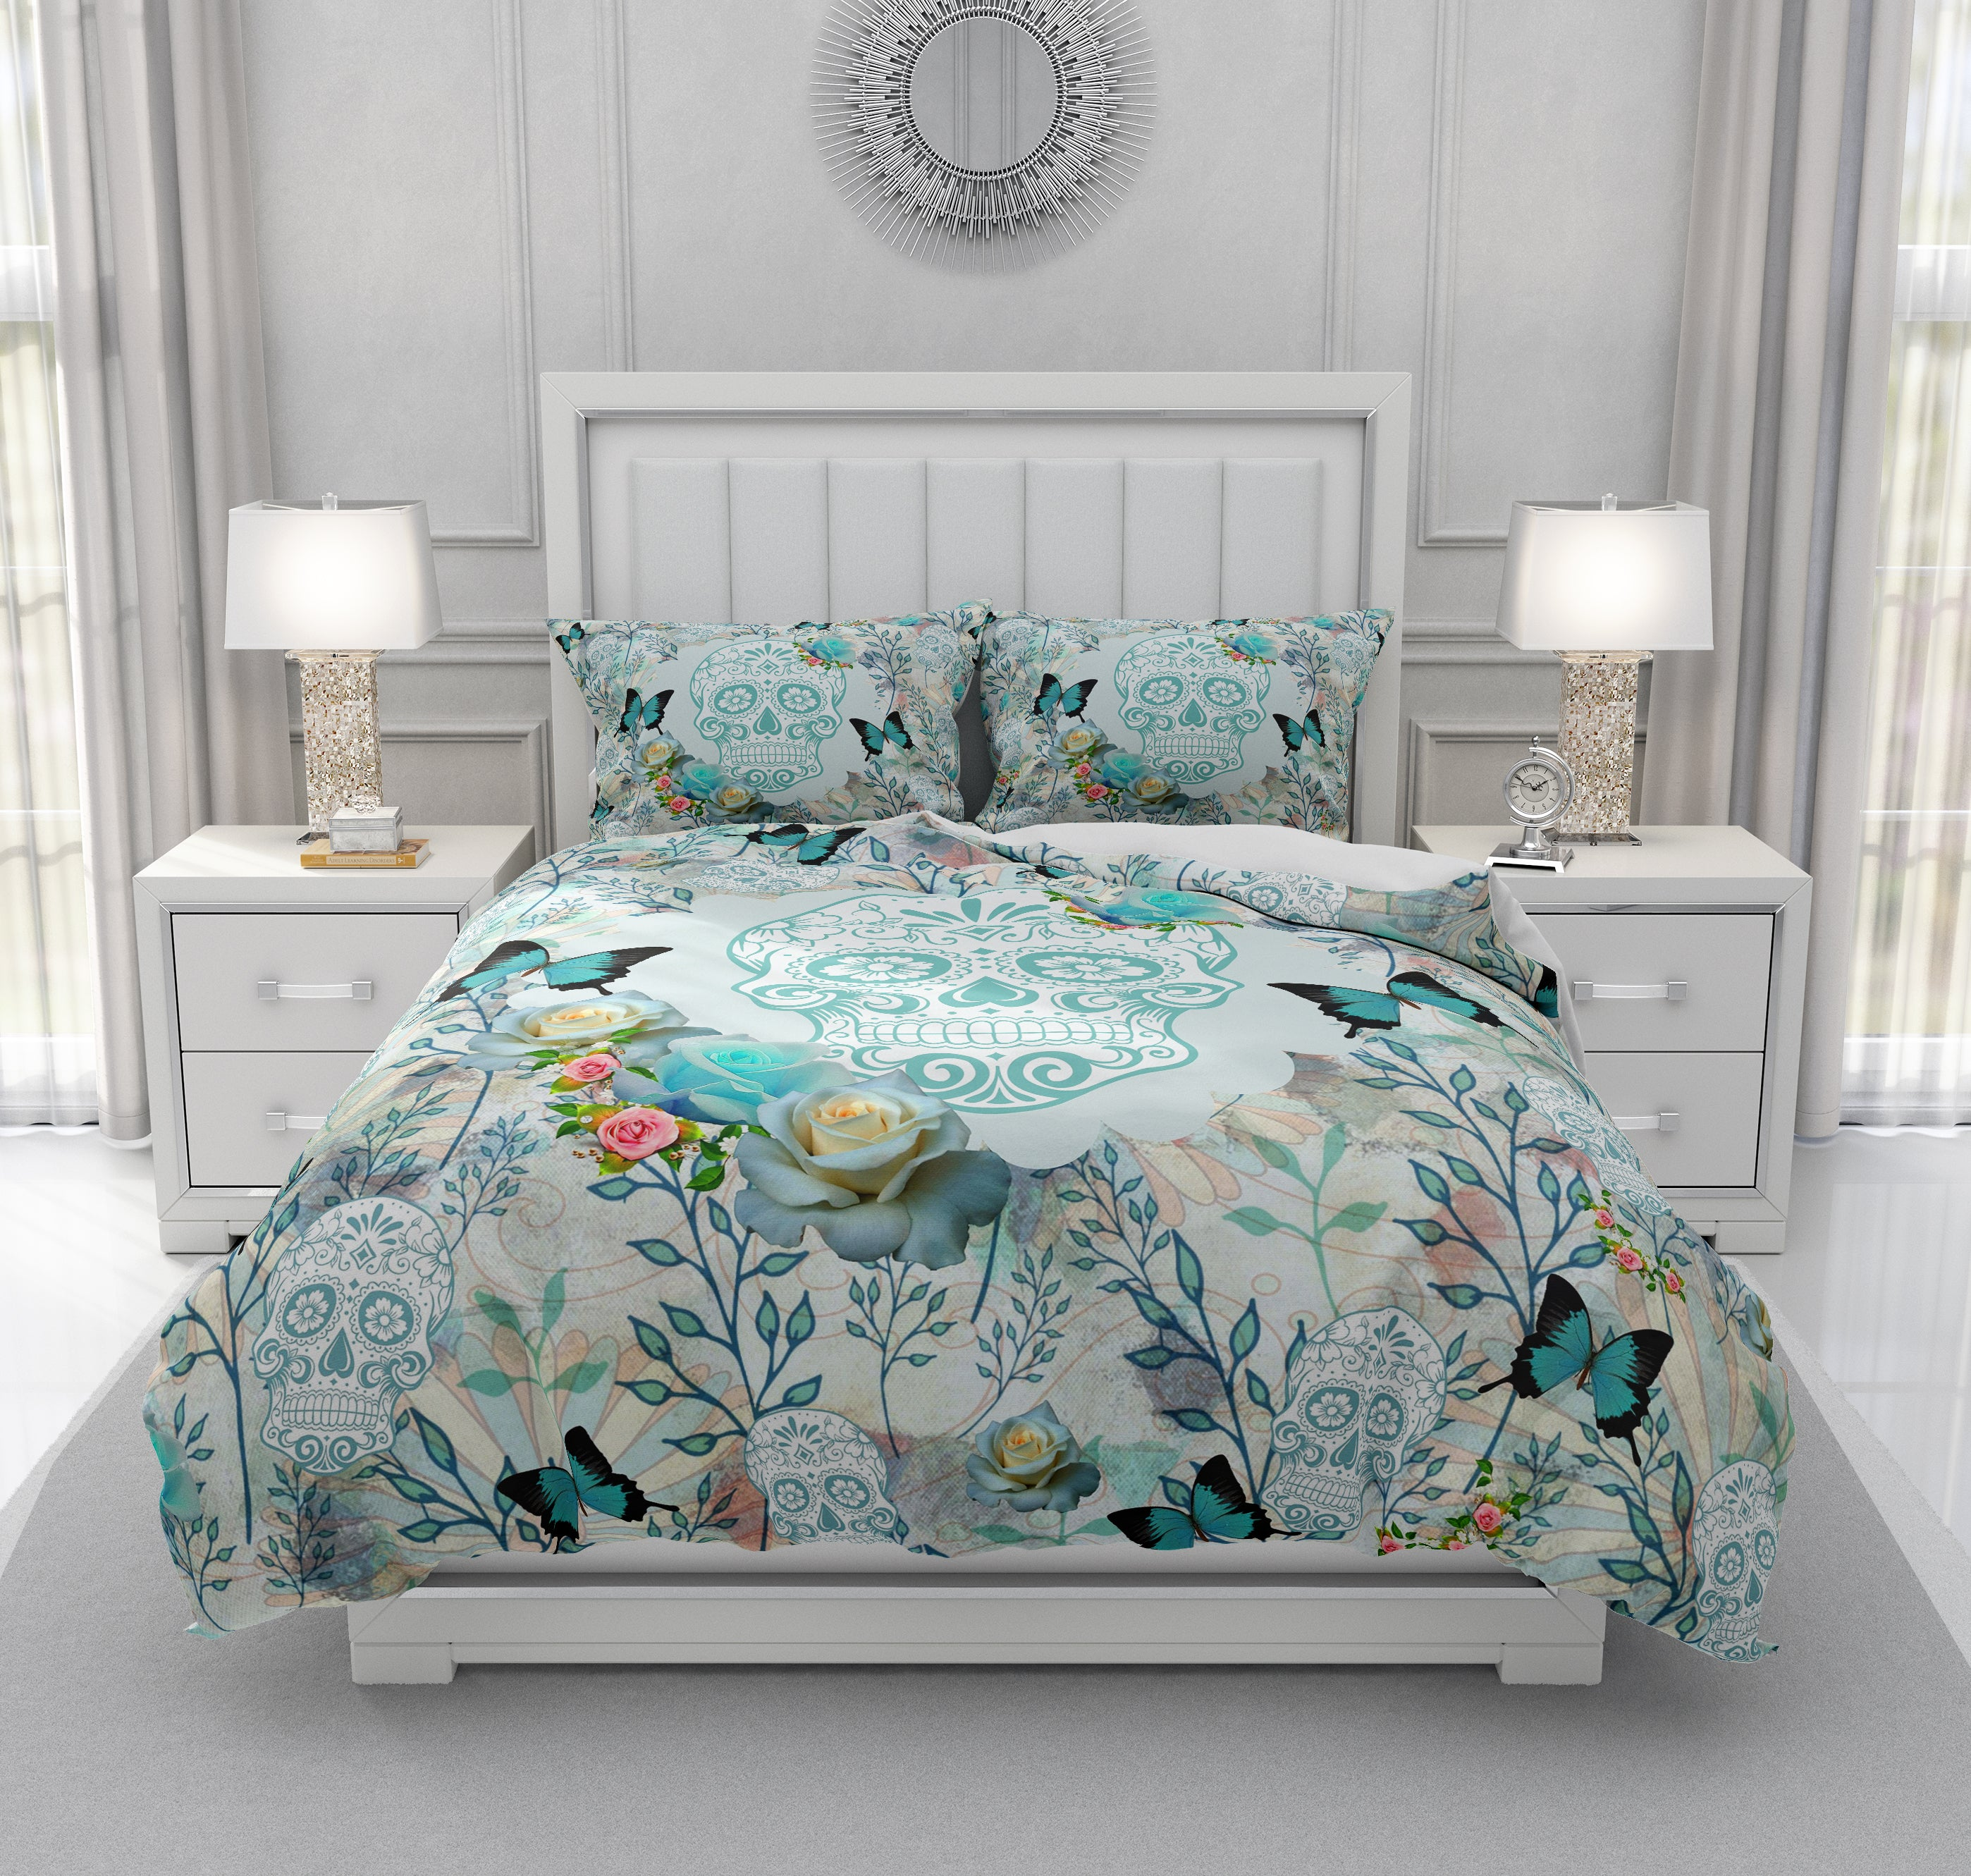 Teal Turquoise Butterfly and Roses Sugar Skull Bedding